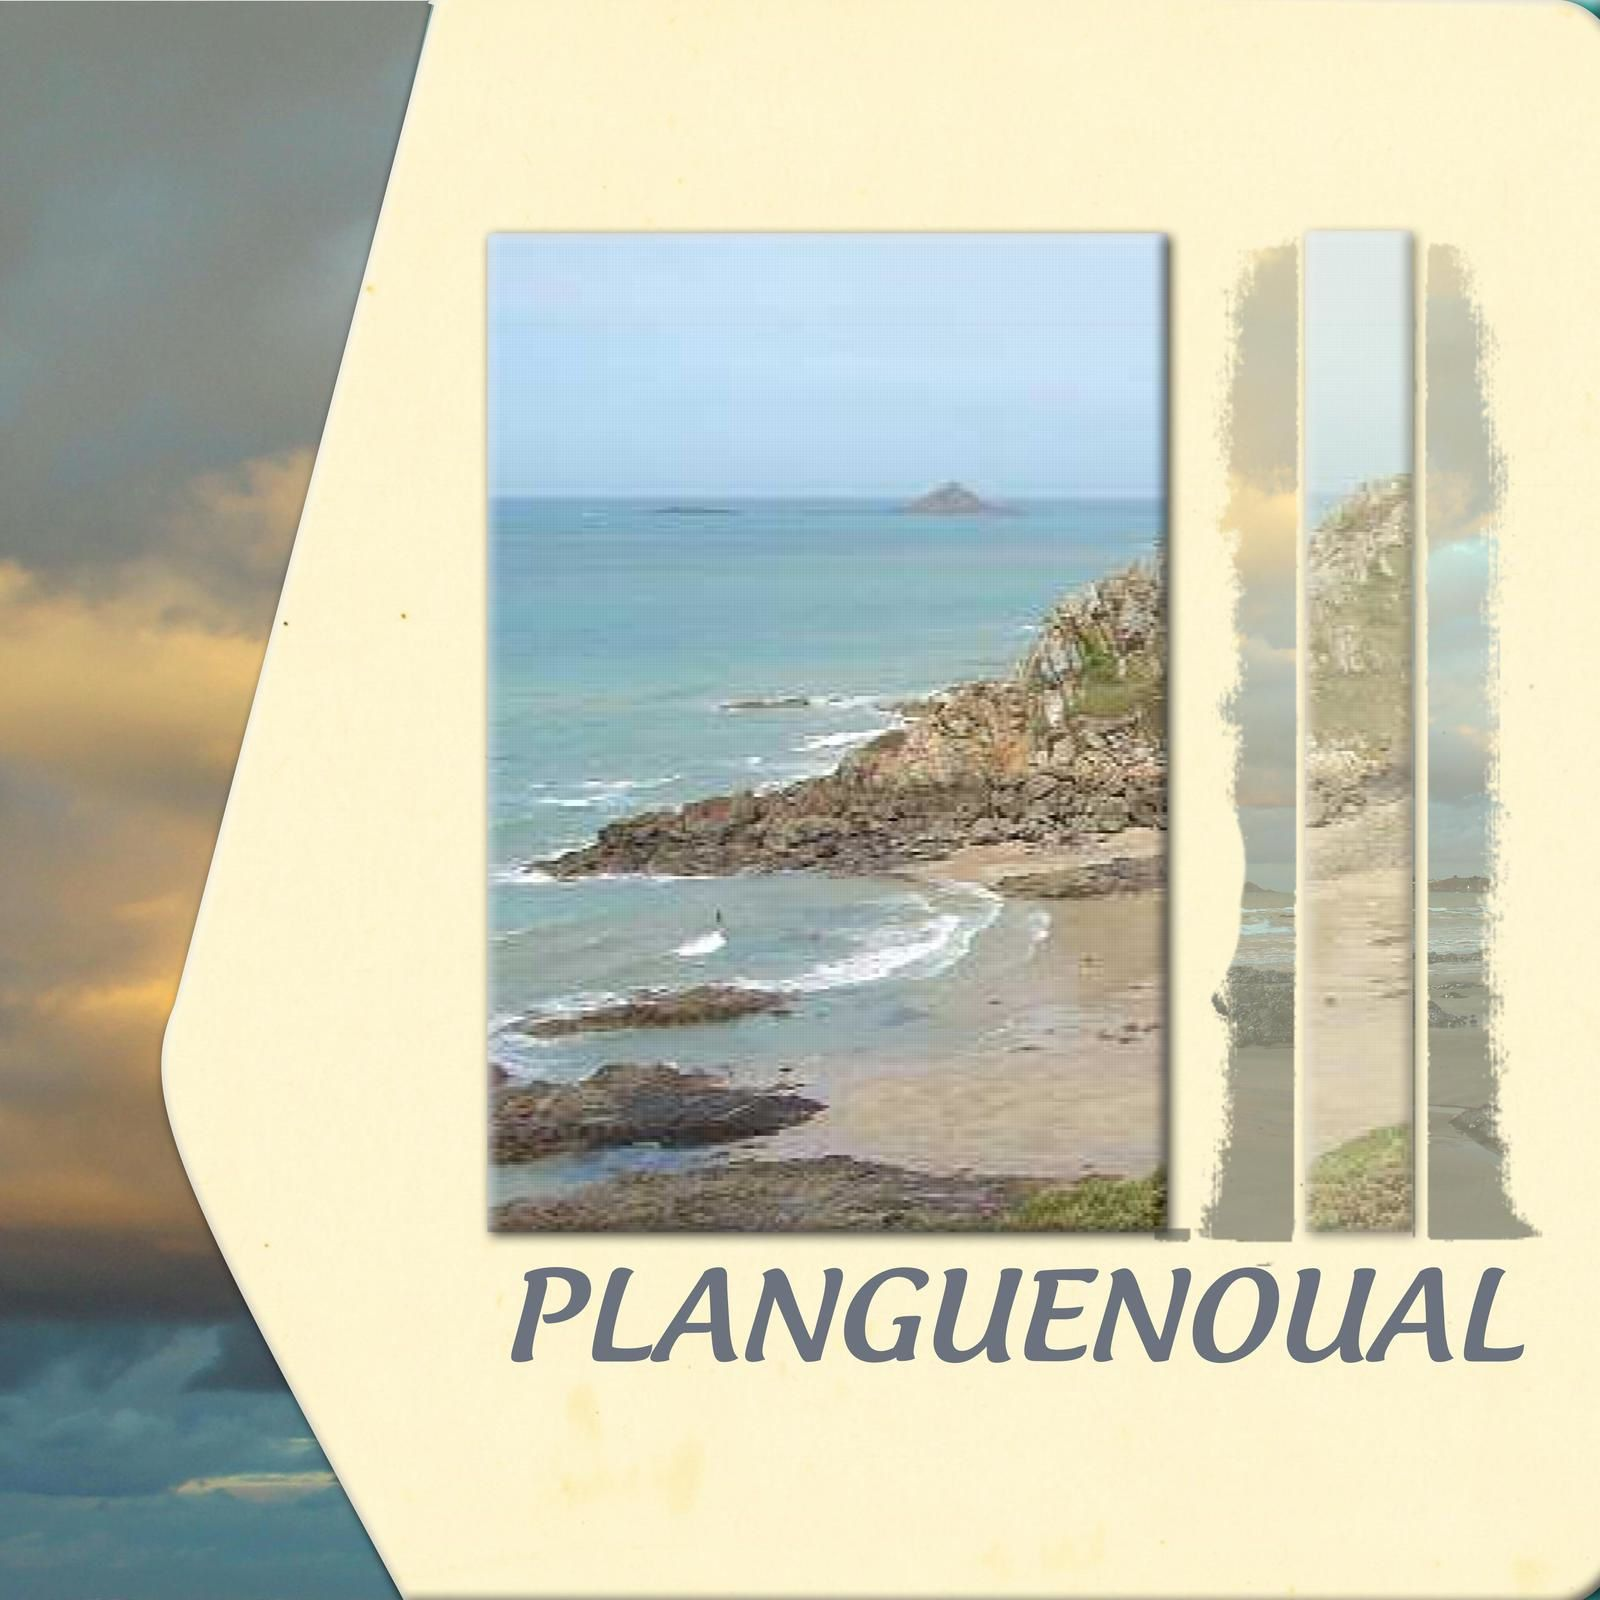 PLANGUENOUAL